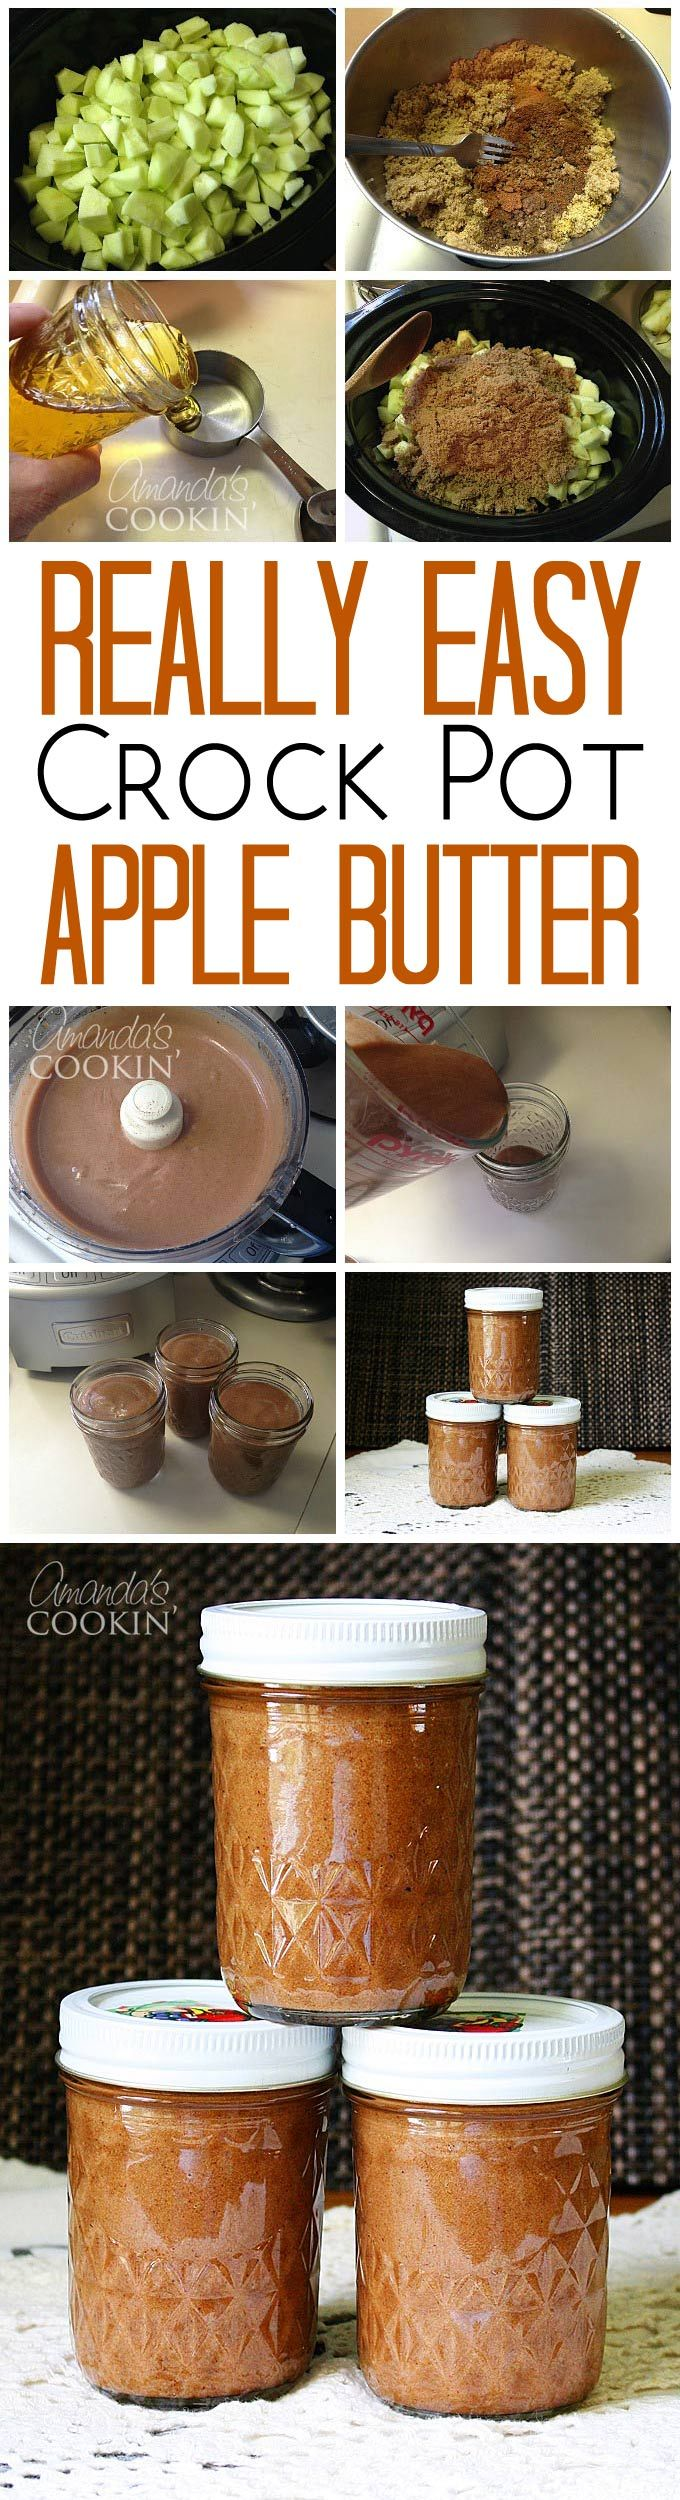 This apple butter recipe for the crock pot is as easy as it is delicious. And it freezes well!